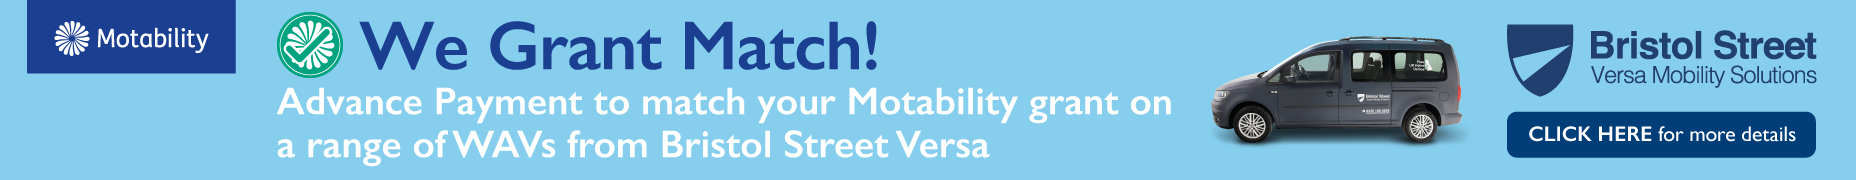 Bristol Street Versa Grant Match Offer